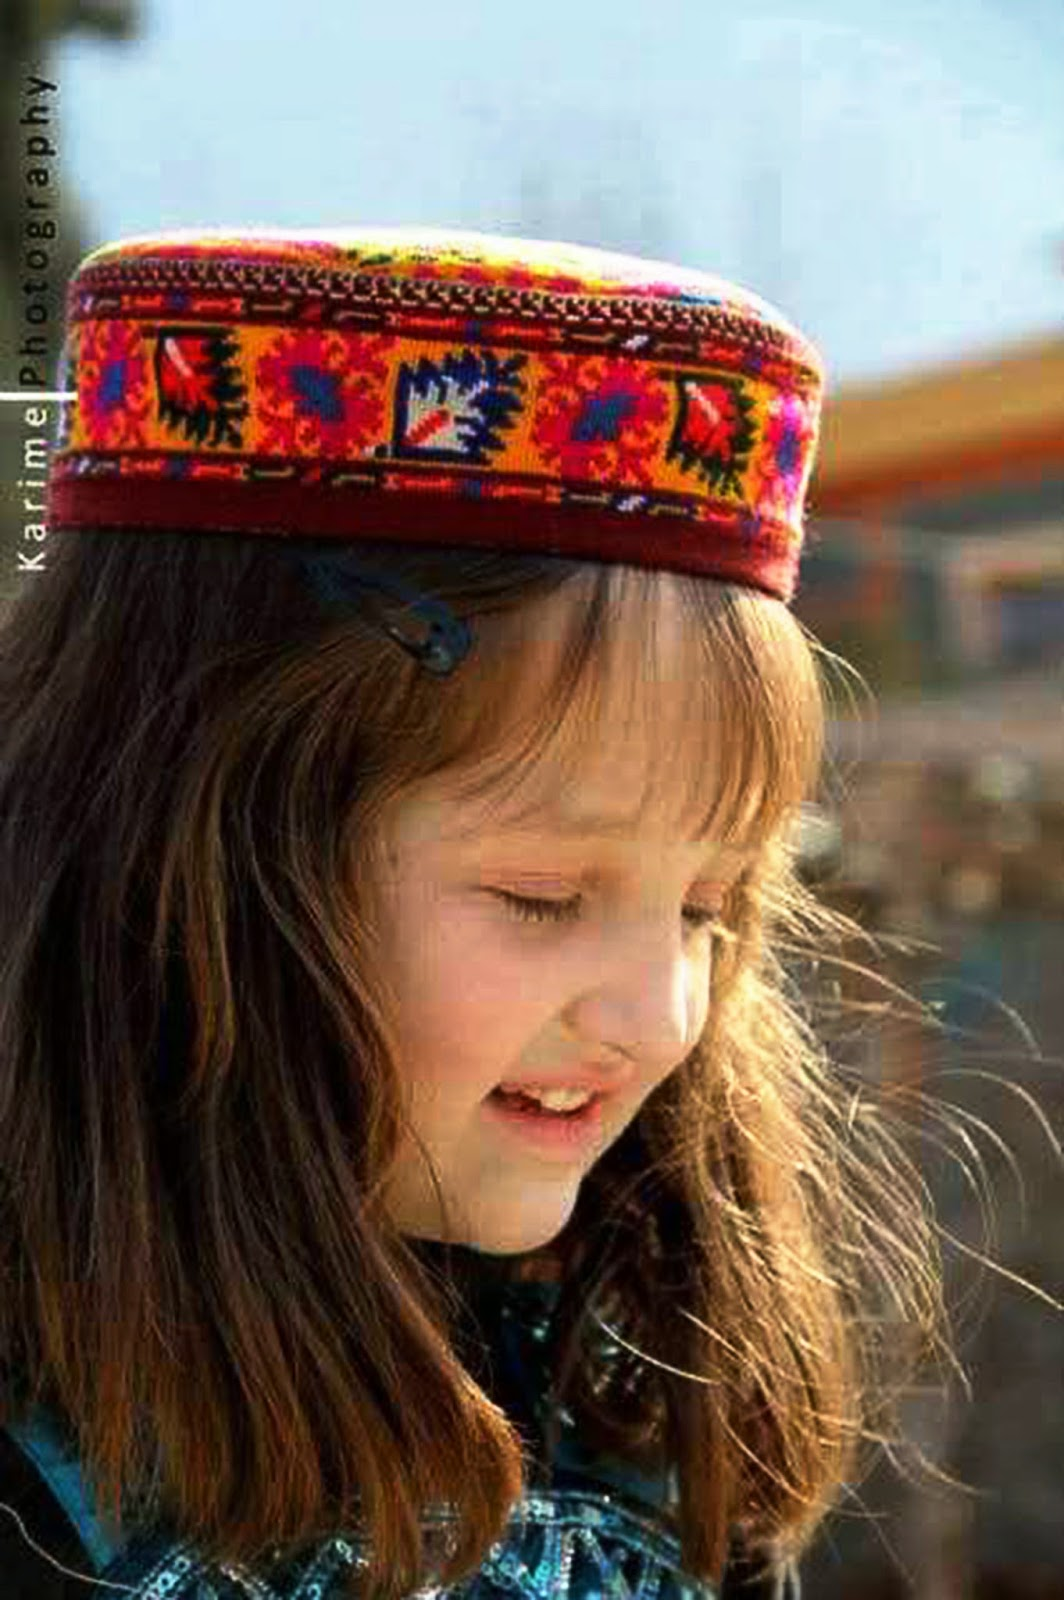 gilgit asian personals Pakistani newspapers for information on local issues, politics, events, celebrations, people and business looking for accommodation, shopping, bargains and weather.